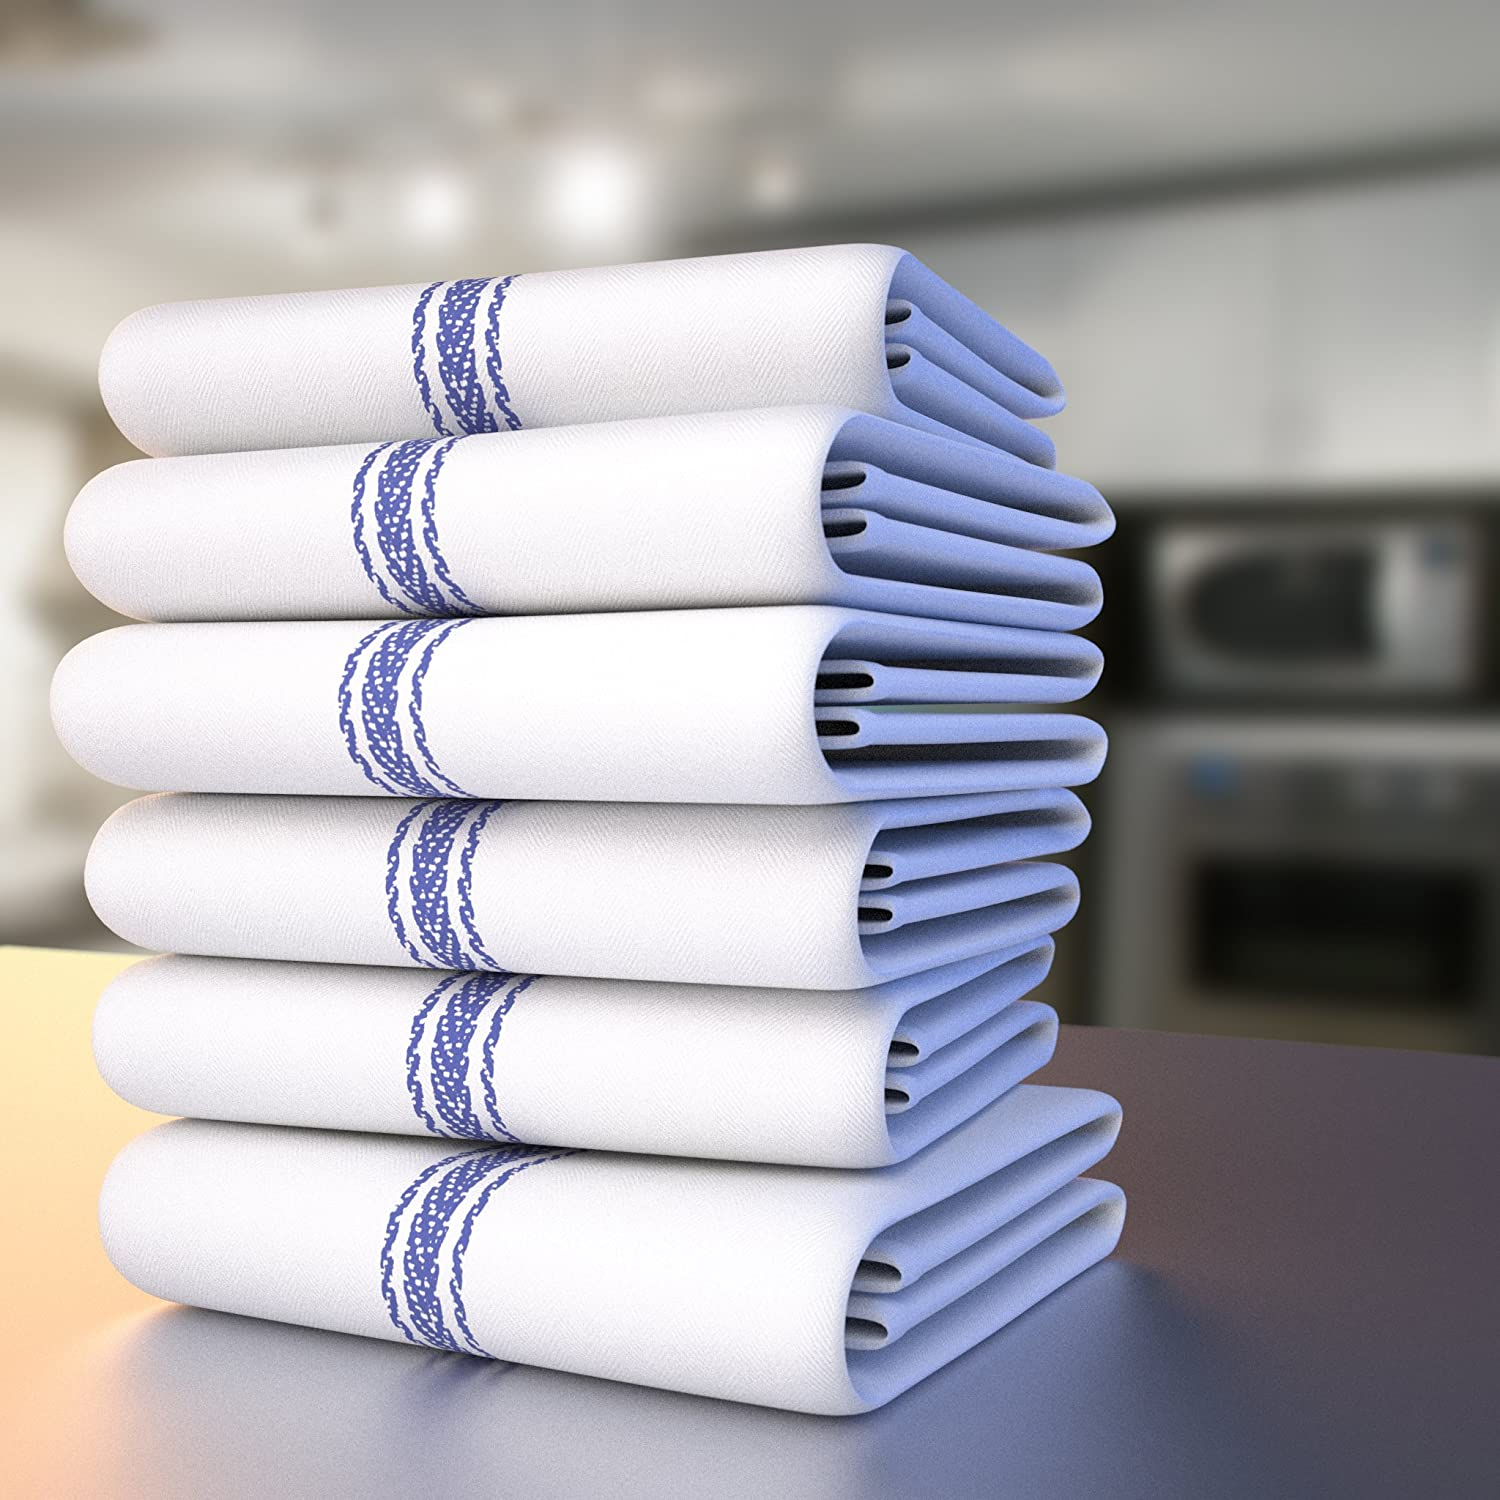 Amazon.com: Keeble Outlets One Dozen (12) Kitchen Dish Towels ... on organic cotton towels, white tea towels, eco cotton towels, whitecotton dish towels, disposable cotton towels, white hand towels, peri cotton towels, high quality cotton towels, 100% cotton towels, white face towels, white linen towels, black towels, silver towels, white monogrammed towels, white towel sets, white hotel towel, white terry towel, white beach towels, egyptian cotton towels, white bath towels,